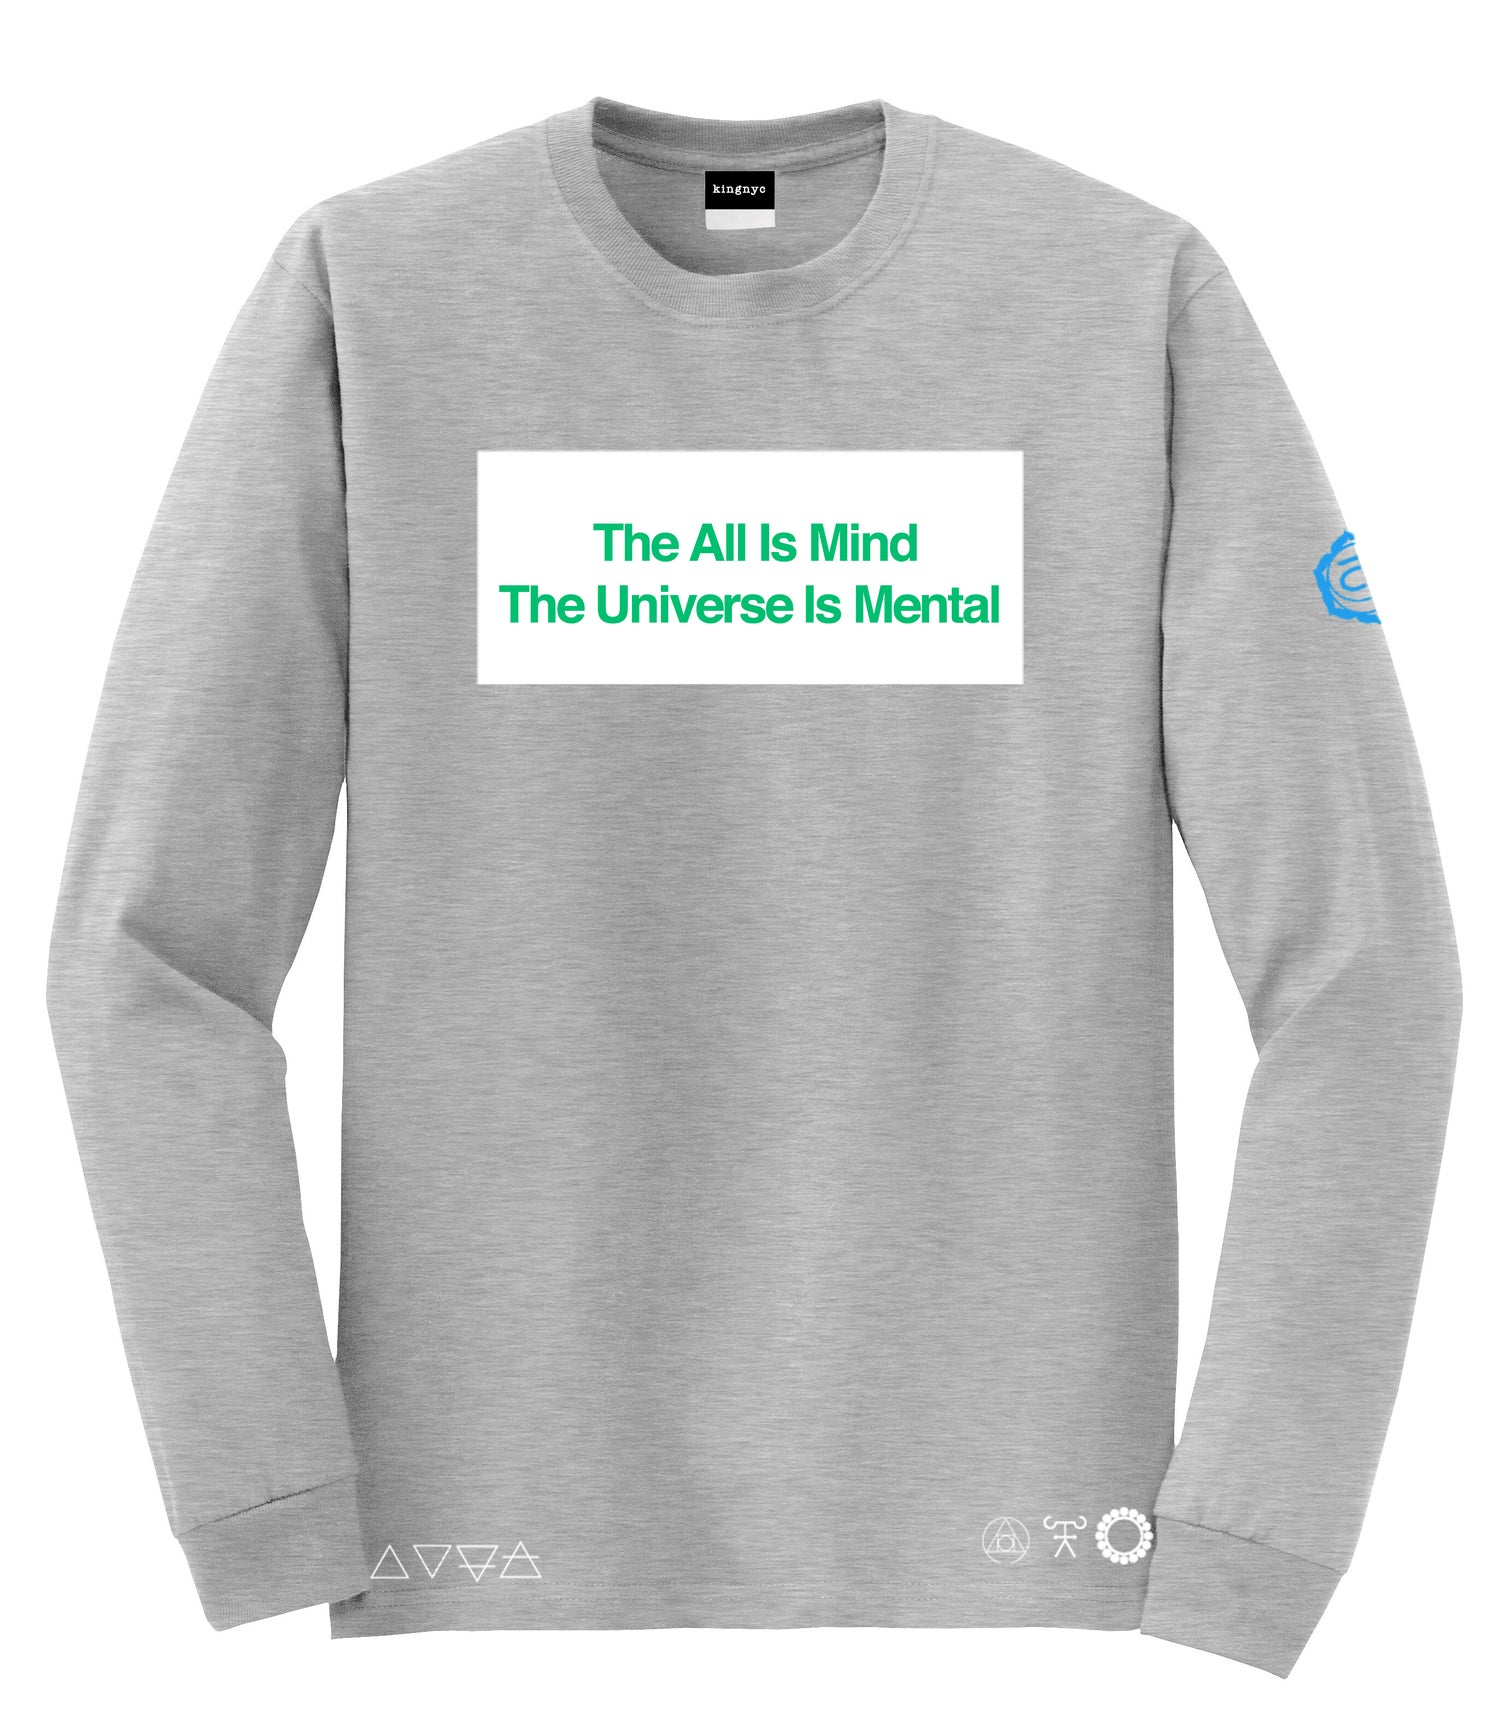 Image of KingNYC The ALL Is Mind LS T-Shirt